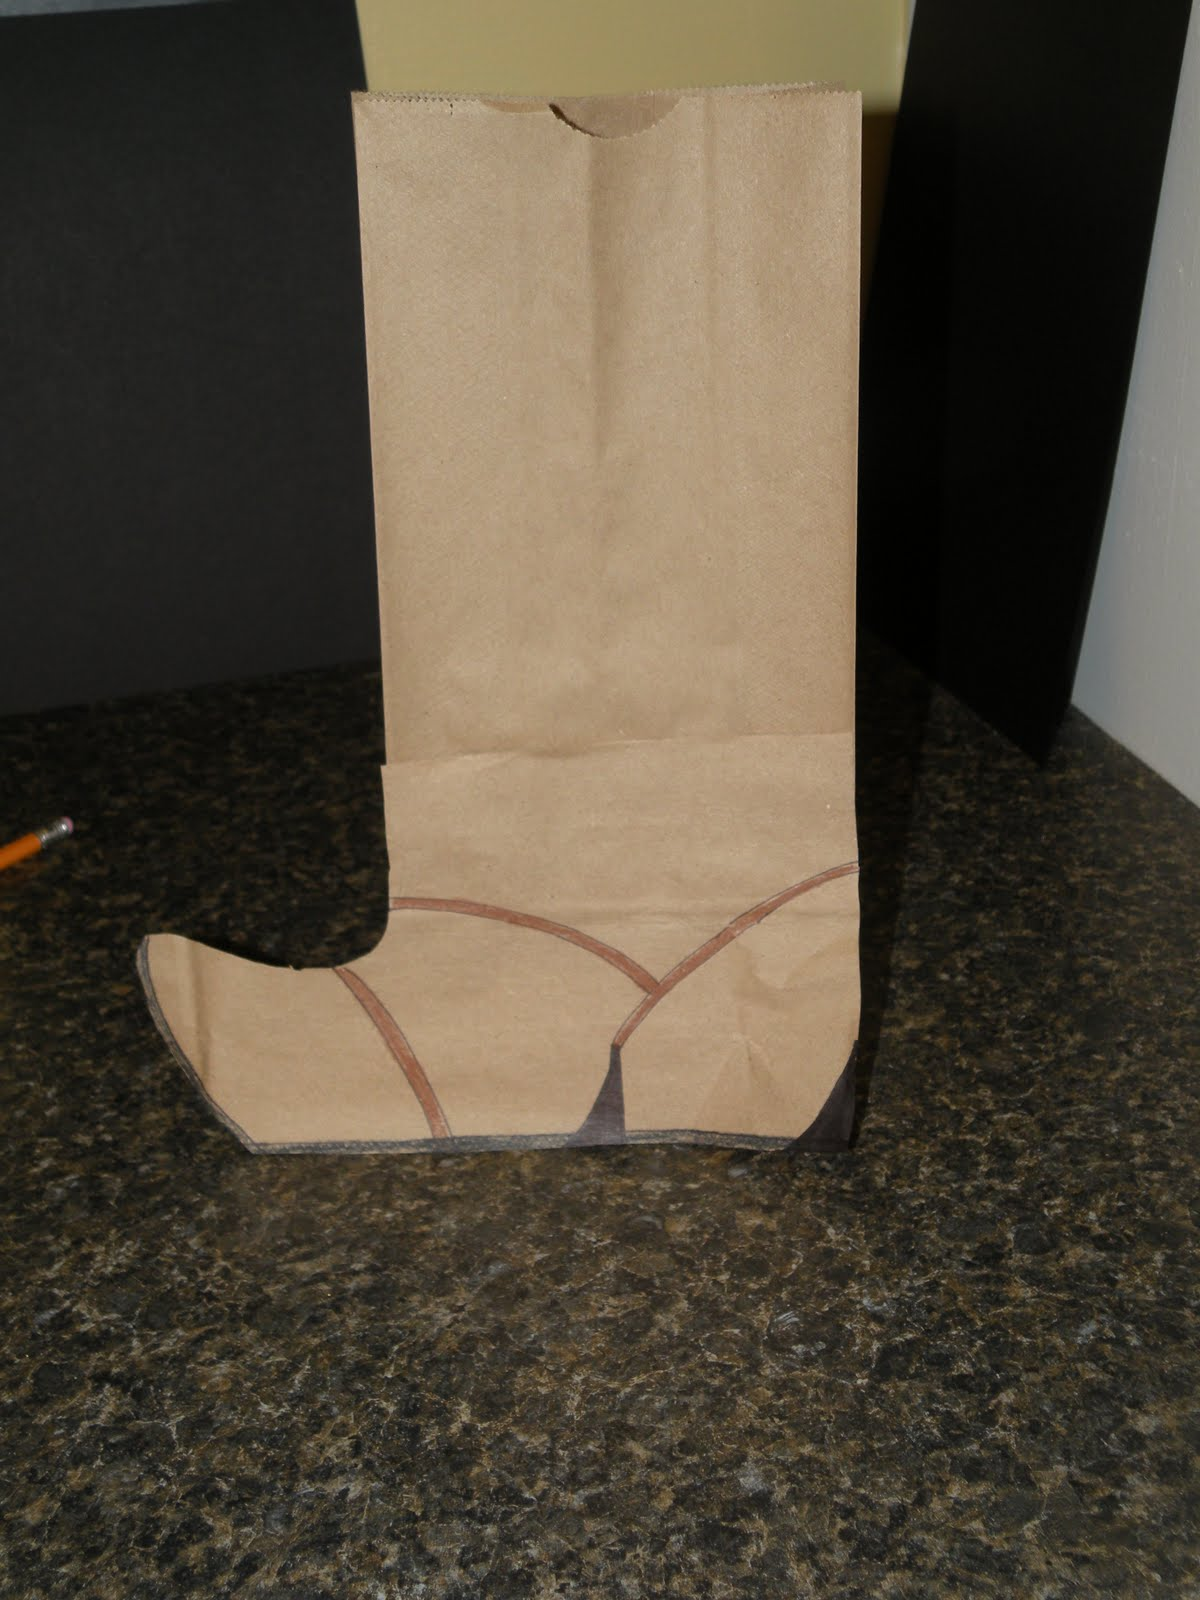 Just a Little Crafting....: Cowboy Boot Favor Bags!